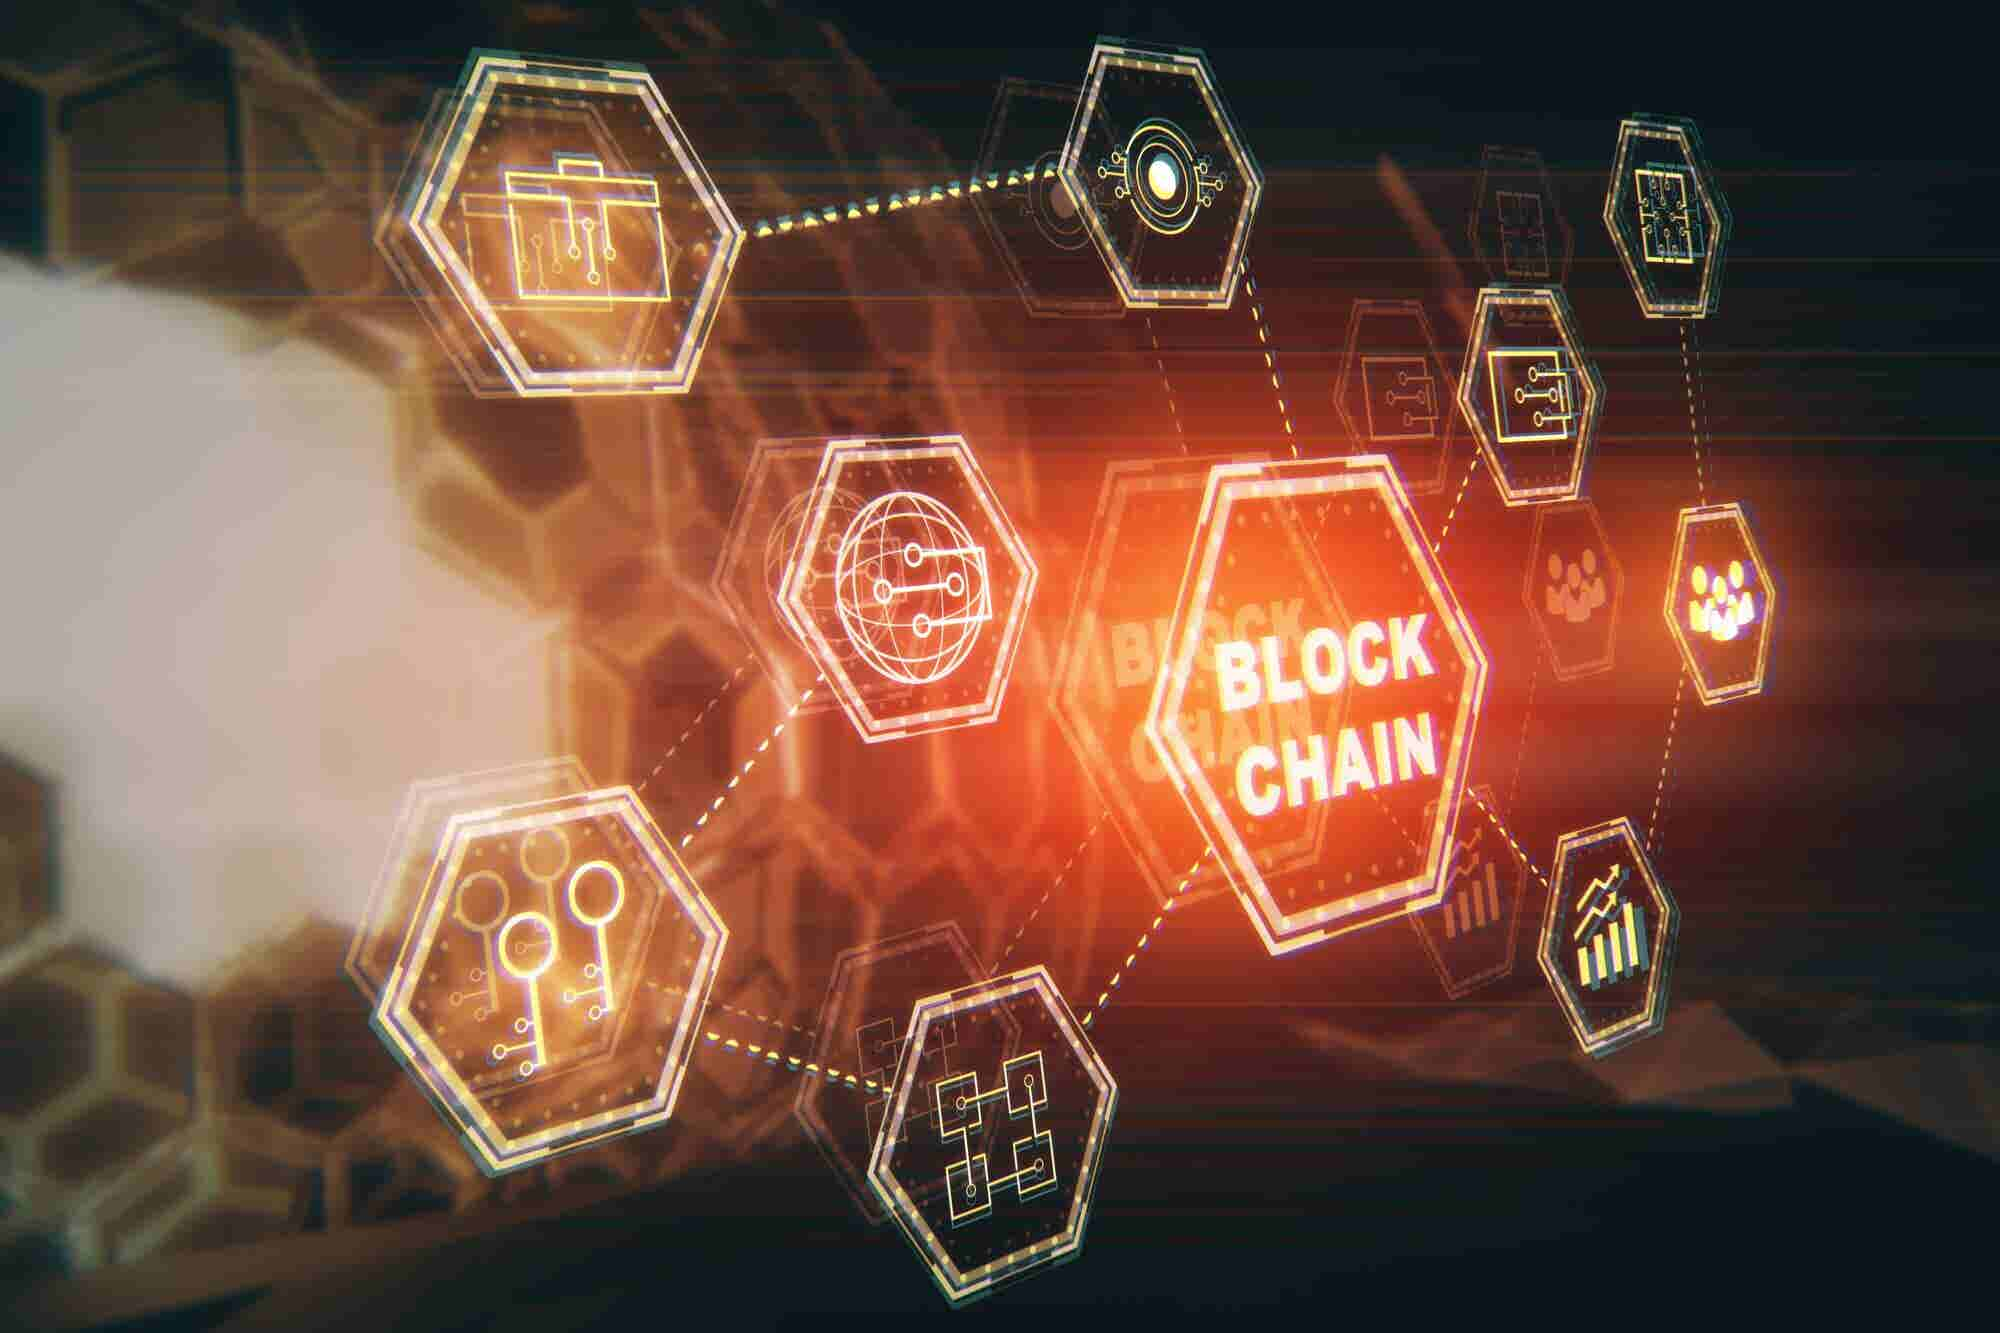 Don't Let Blockchain Technology's Security Loopholes Go Unnoticed